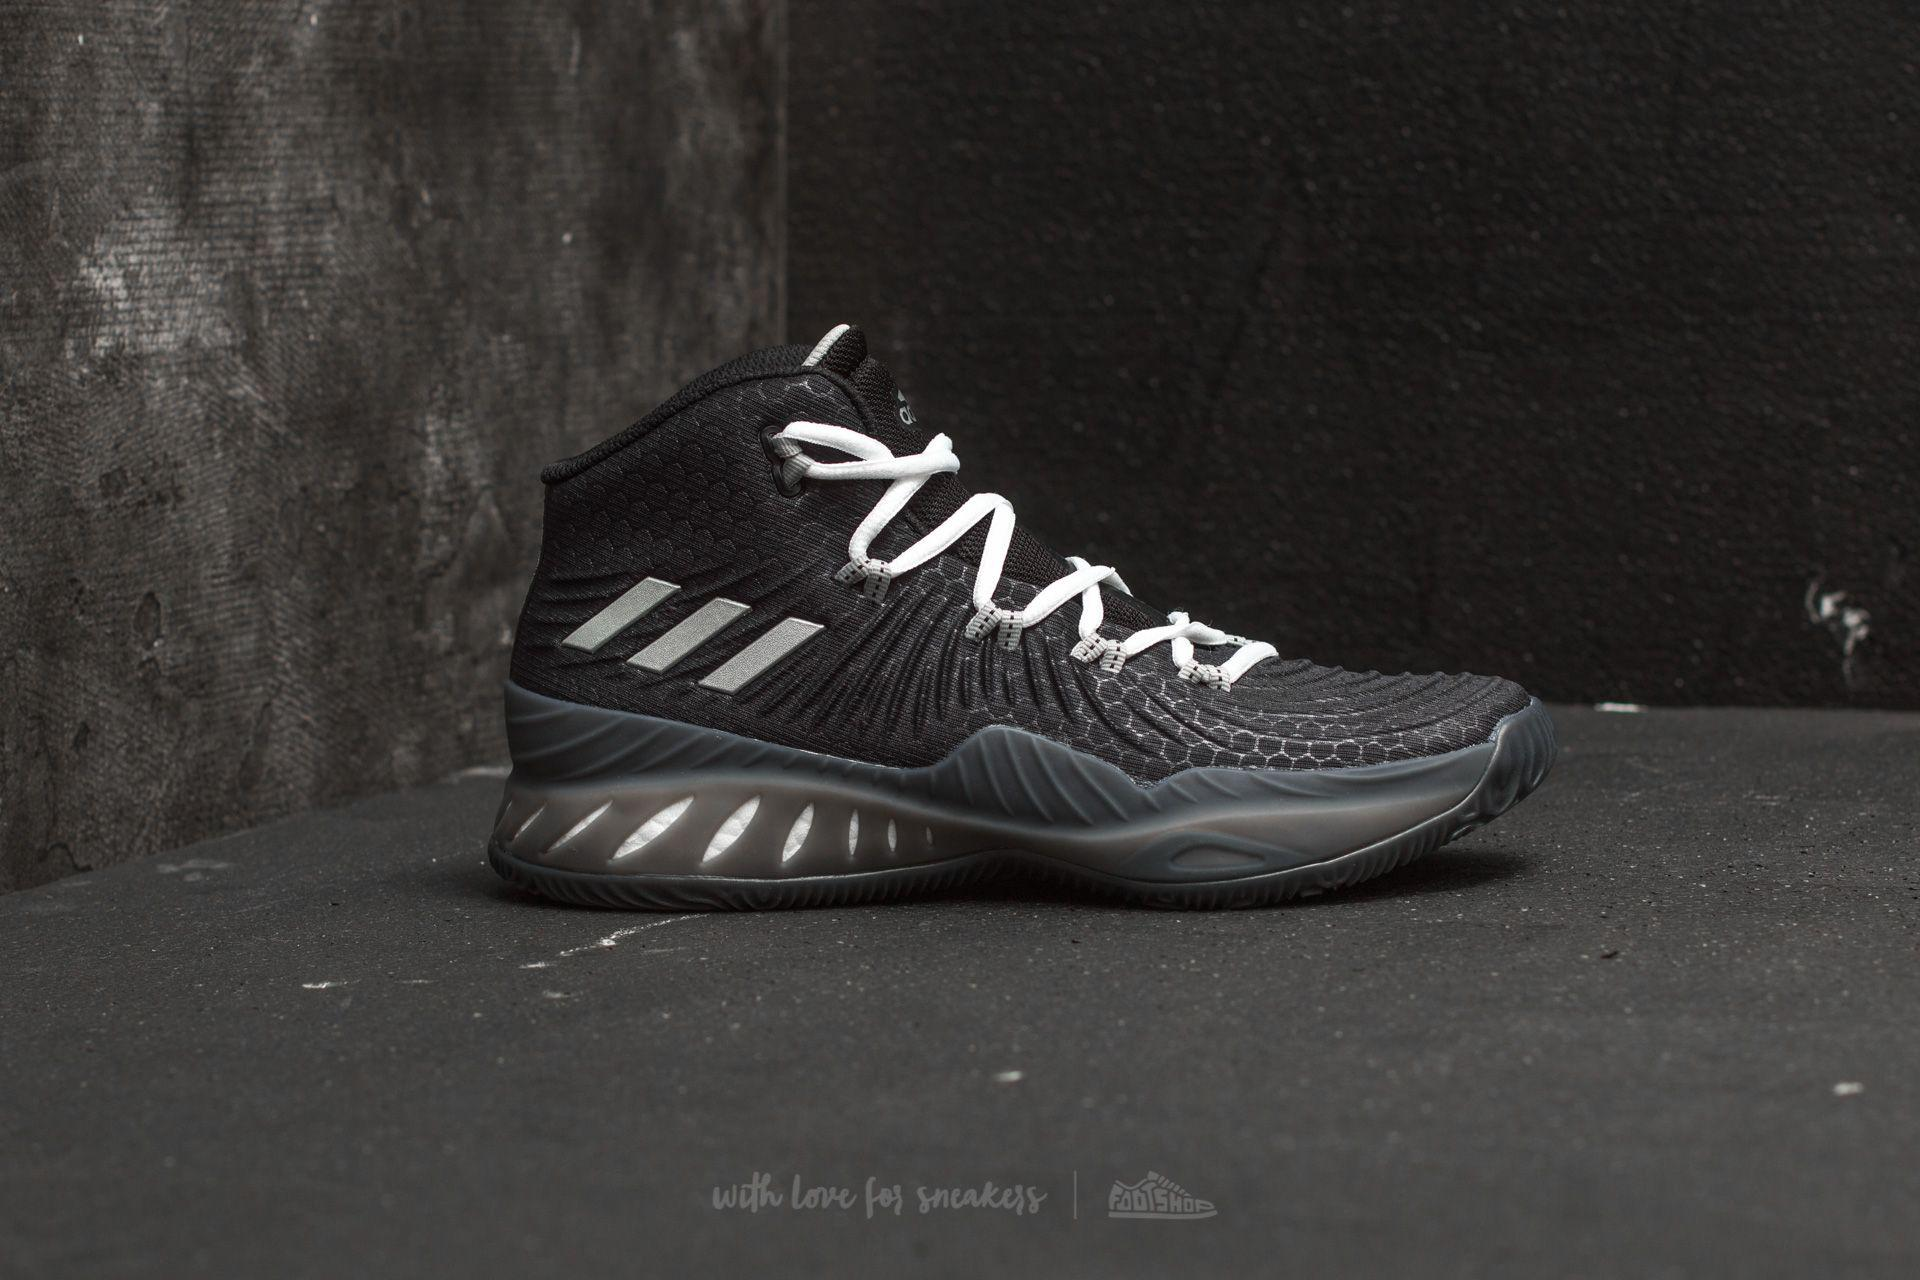 best website d2950 f26fc Lyst - adidas Originals Adidas Crazy Explosive 2017 Core Bla